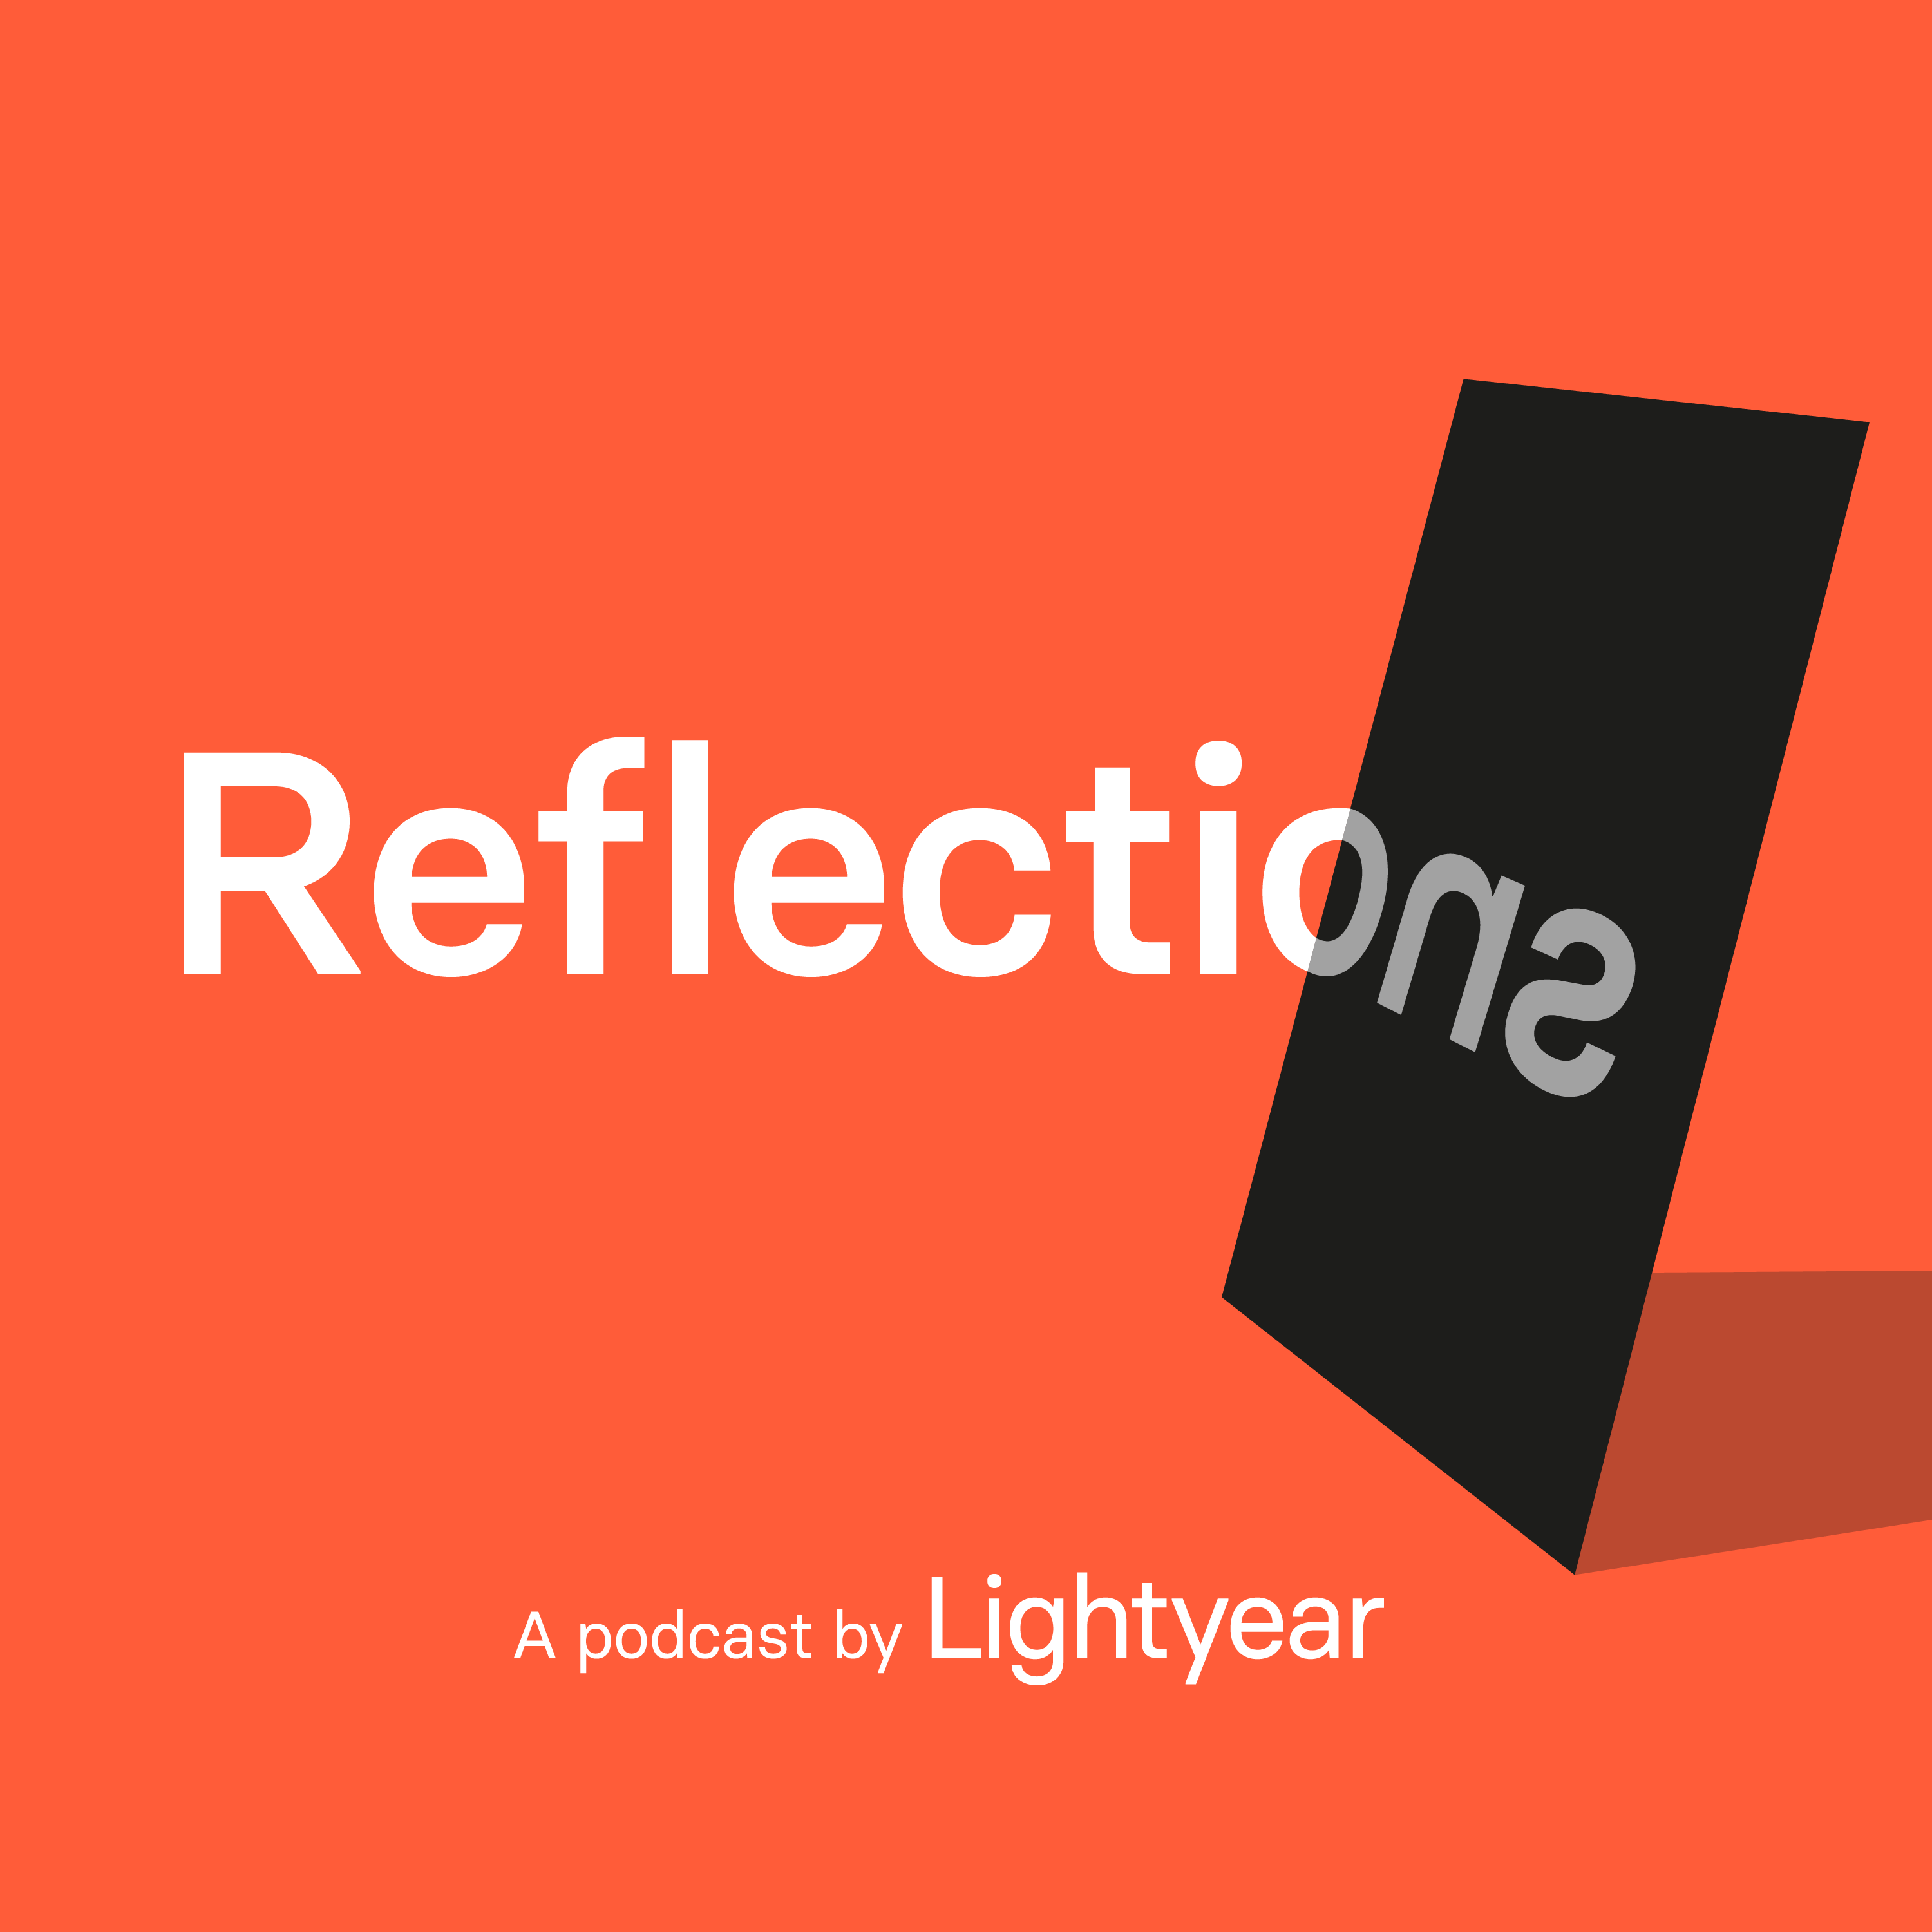 A podcast by Lightyear